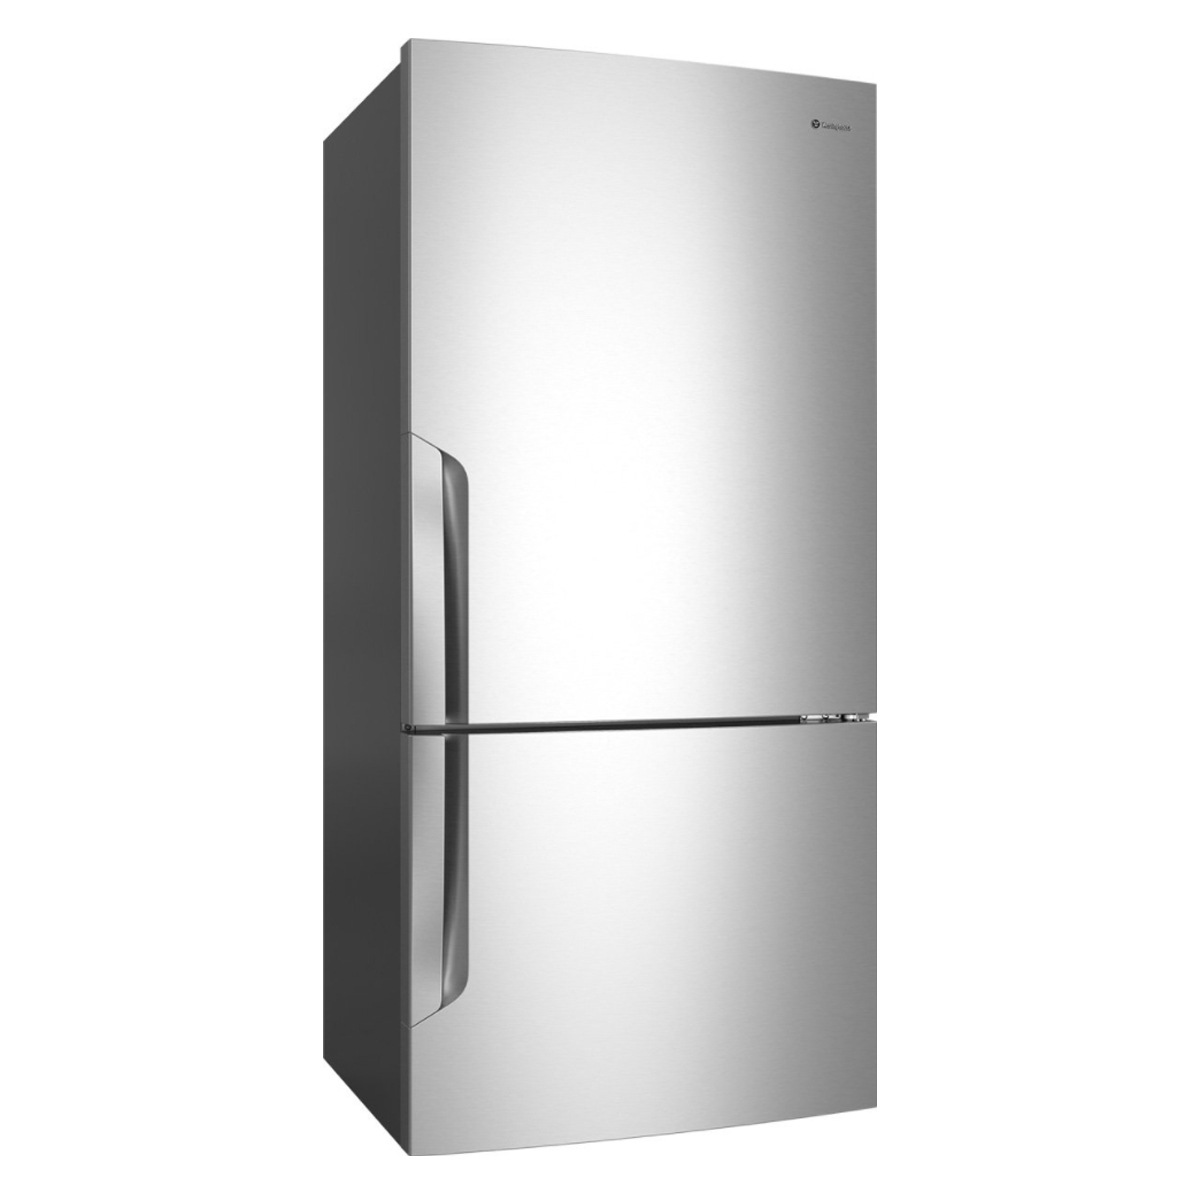 Westinghouse WBE5300SARH 528Litres Bottom Mount Fridge 79559